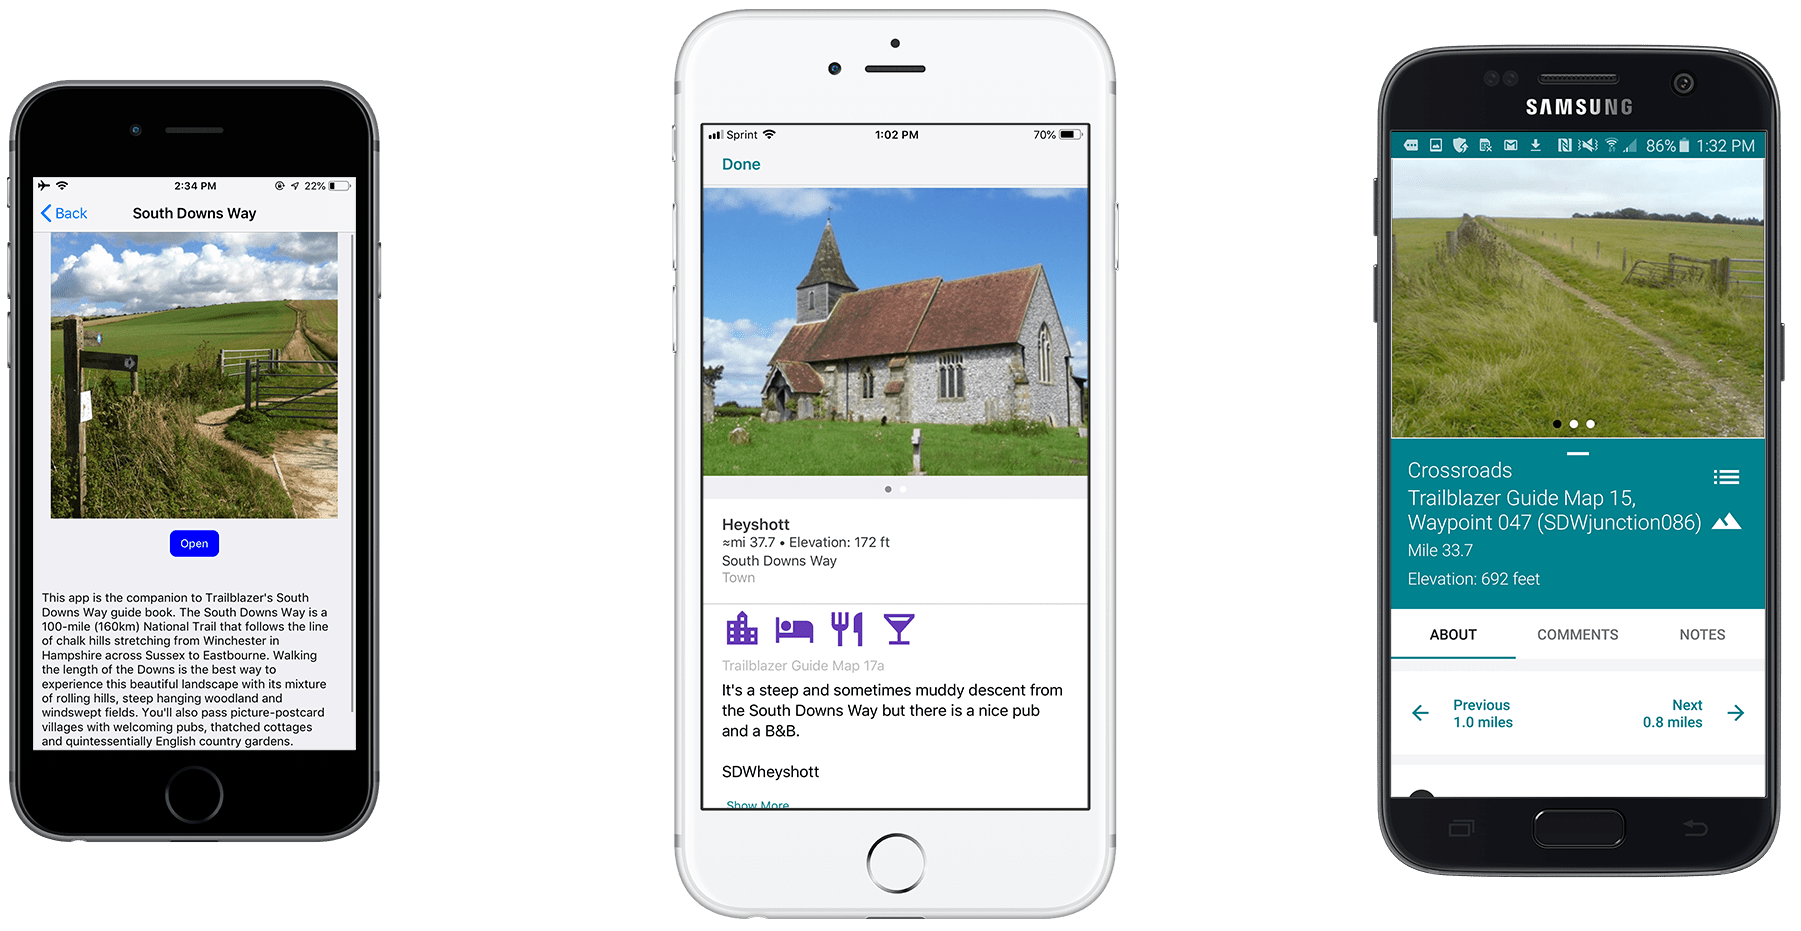 Screenshots of the Guthook Guides South Downs Way guide.